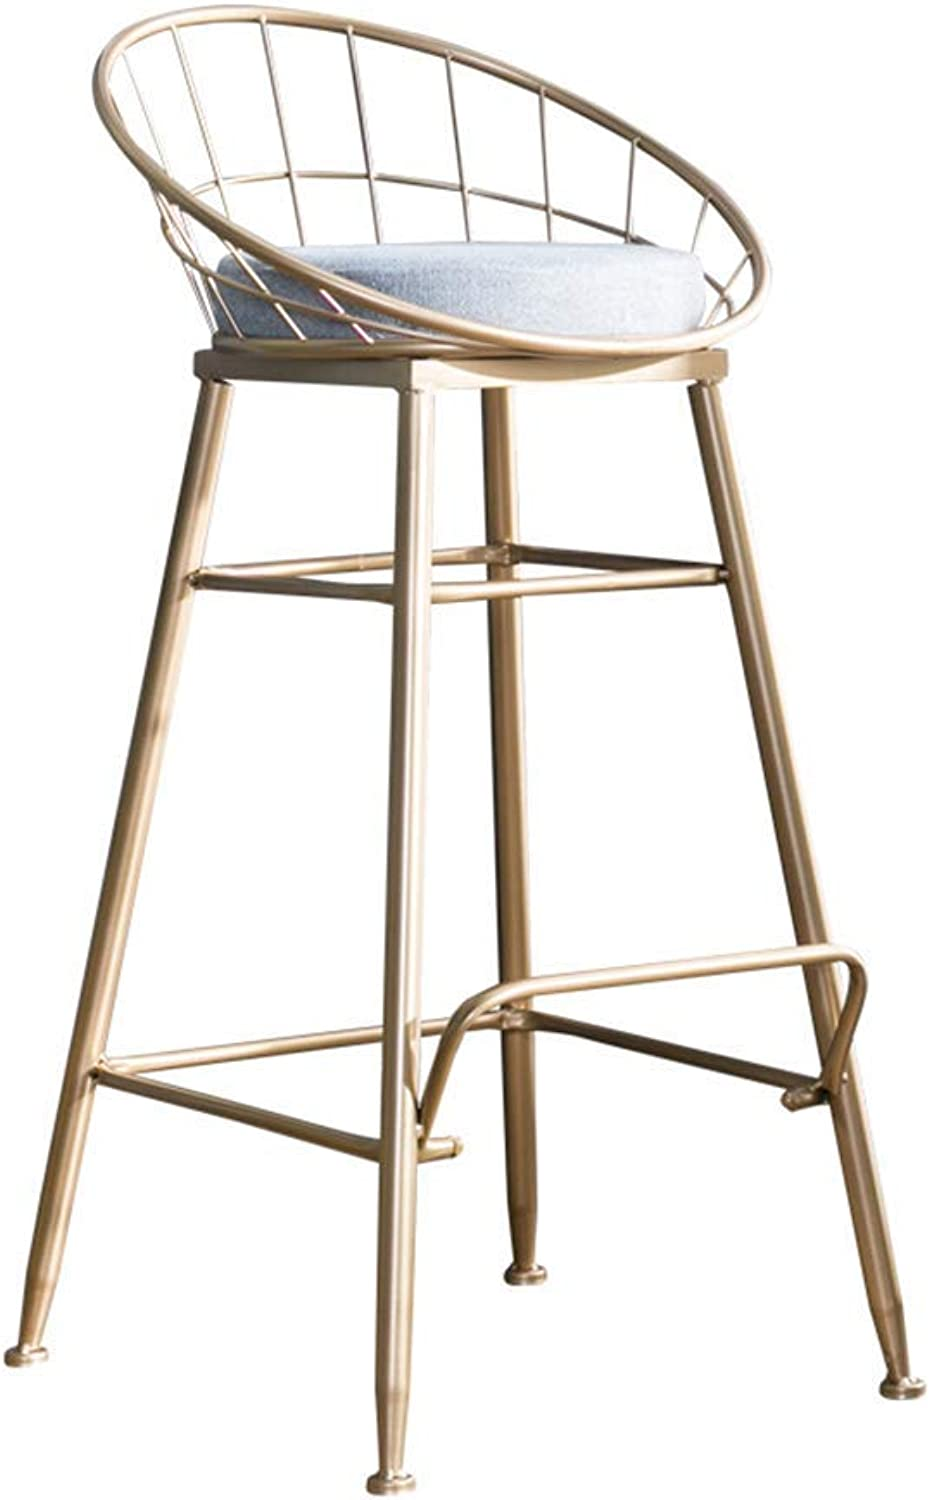 Iron Art Bar Desk European Simple Dining Chair Nordic Front Desk Fashion Chair, Lounge Chair Makeup Stool Small Backrest Wrought Iron Chair,gold,75cm